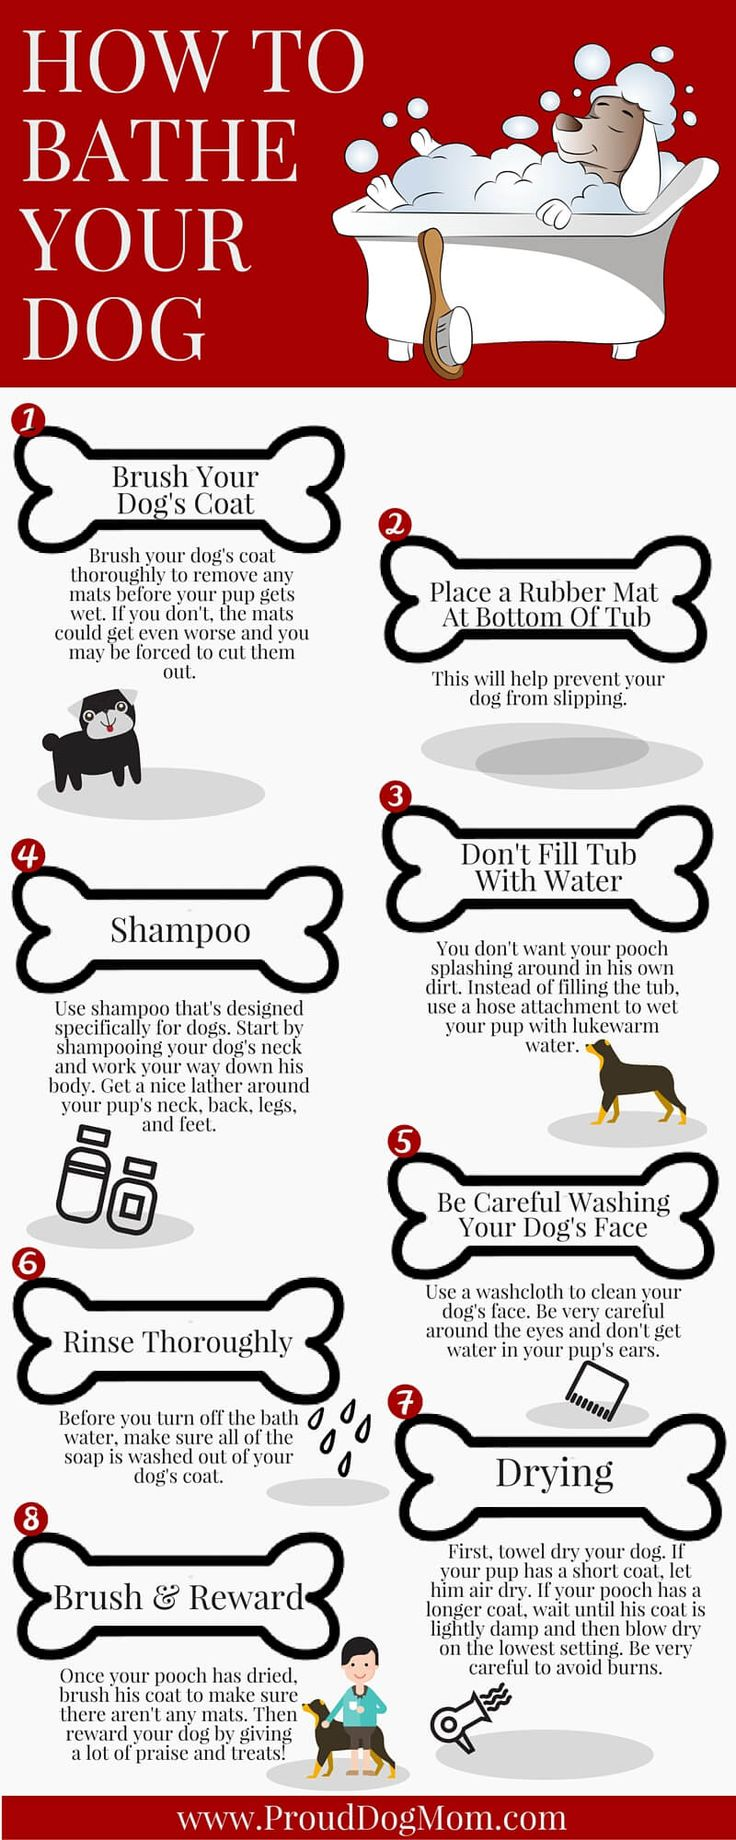 How To Bathe Your Dog In 8 Steps (Infographic)